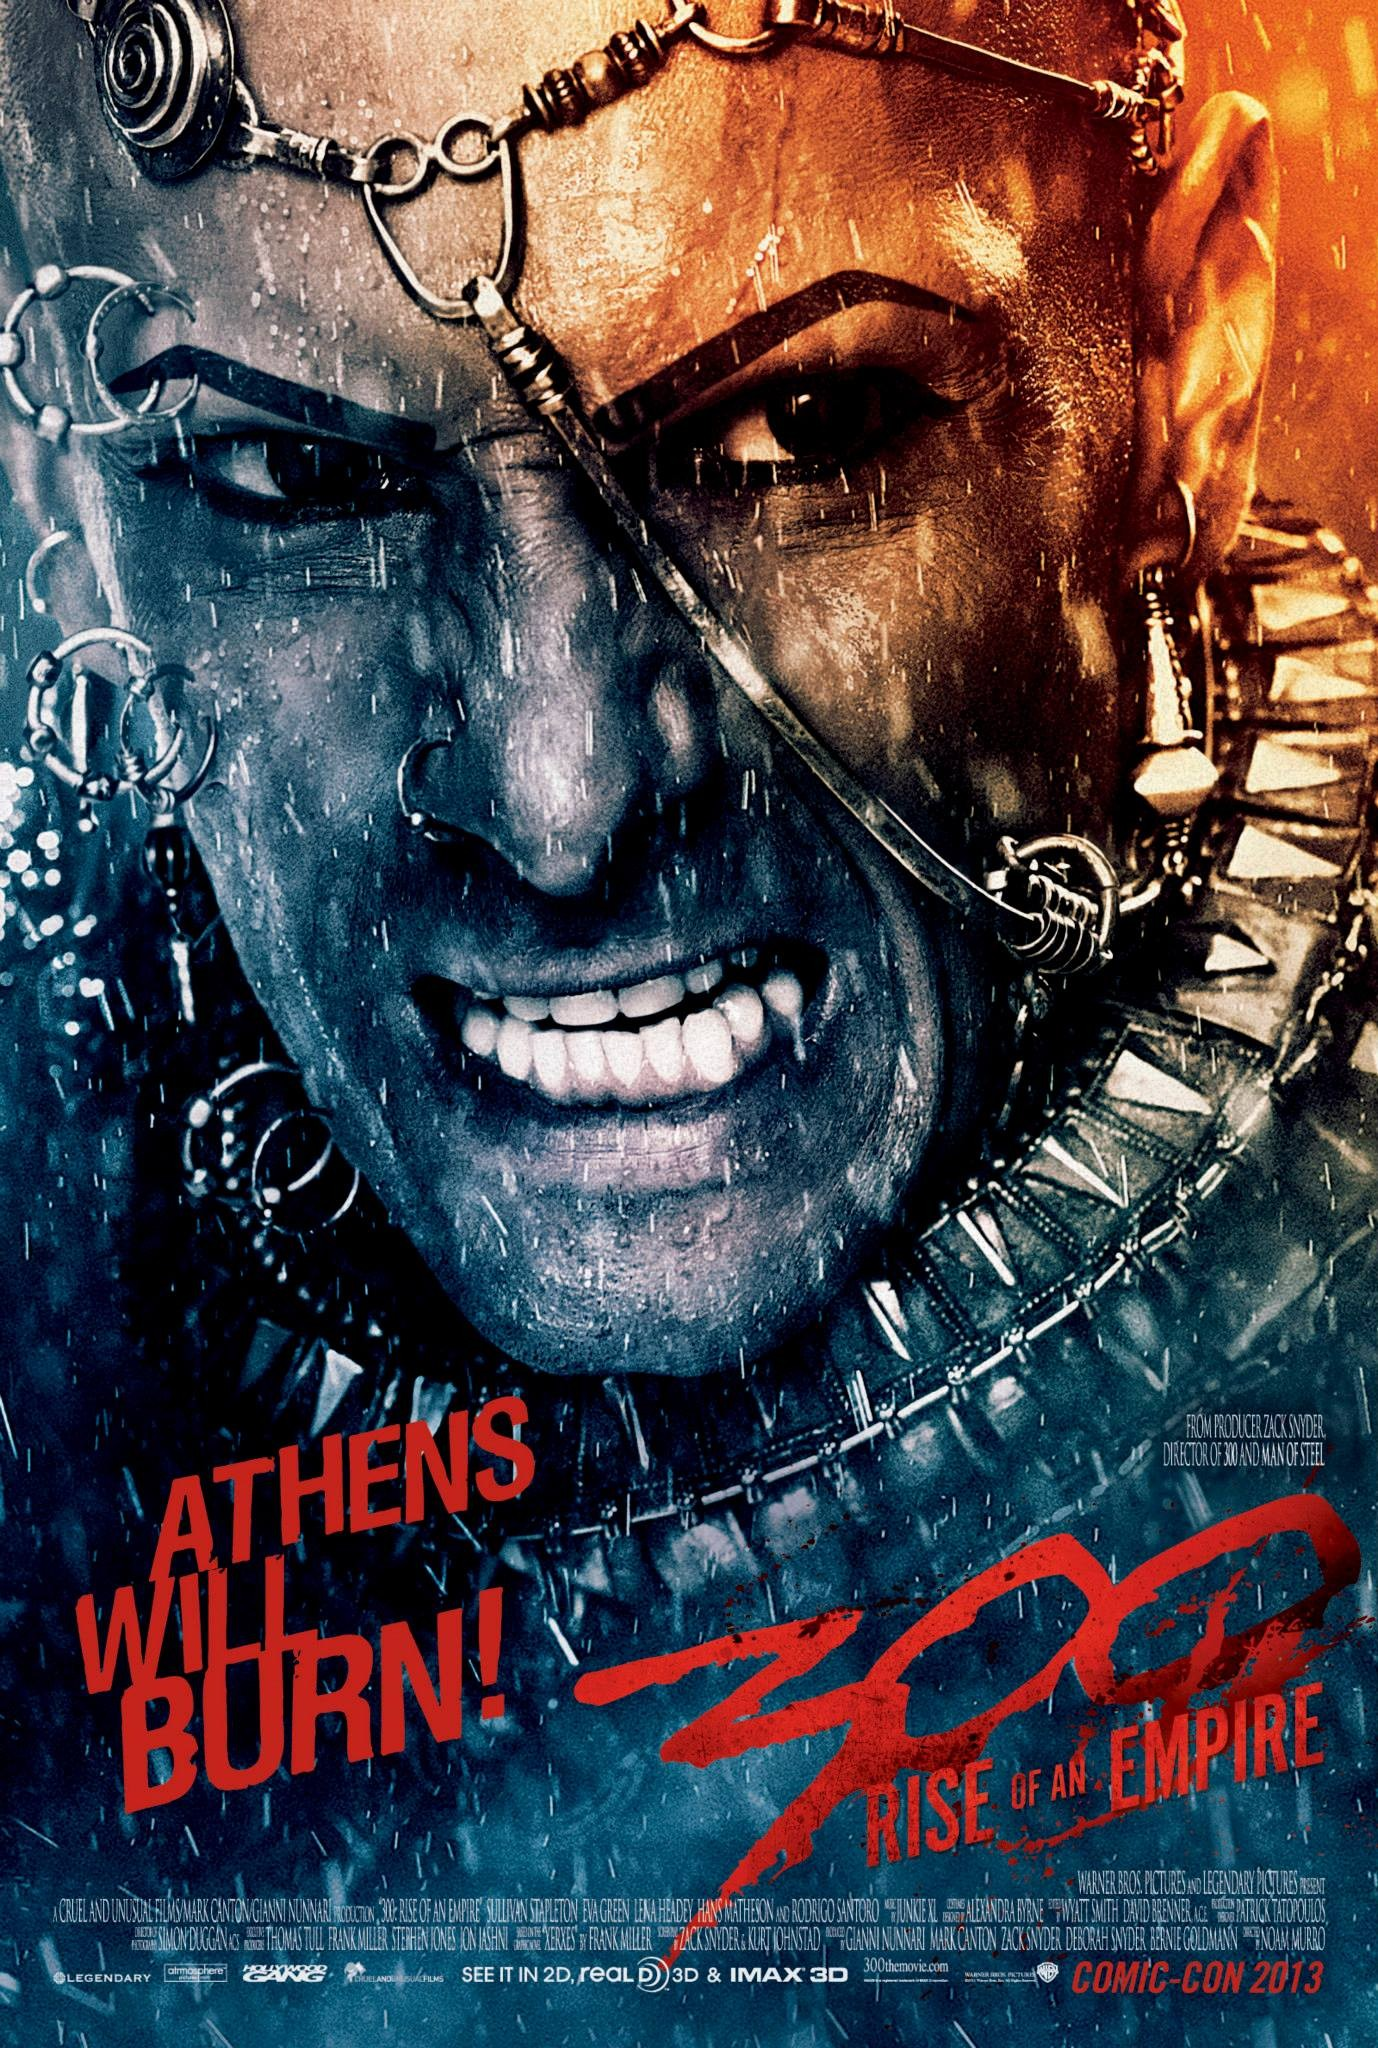 300 Rise of an Empire-Official Poster Banner PROMO COMIC-CON POSTER-17JULHO2013-01